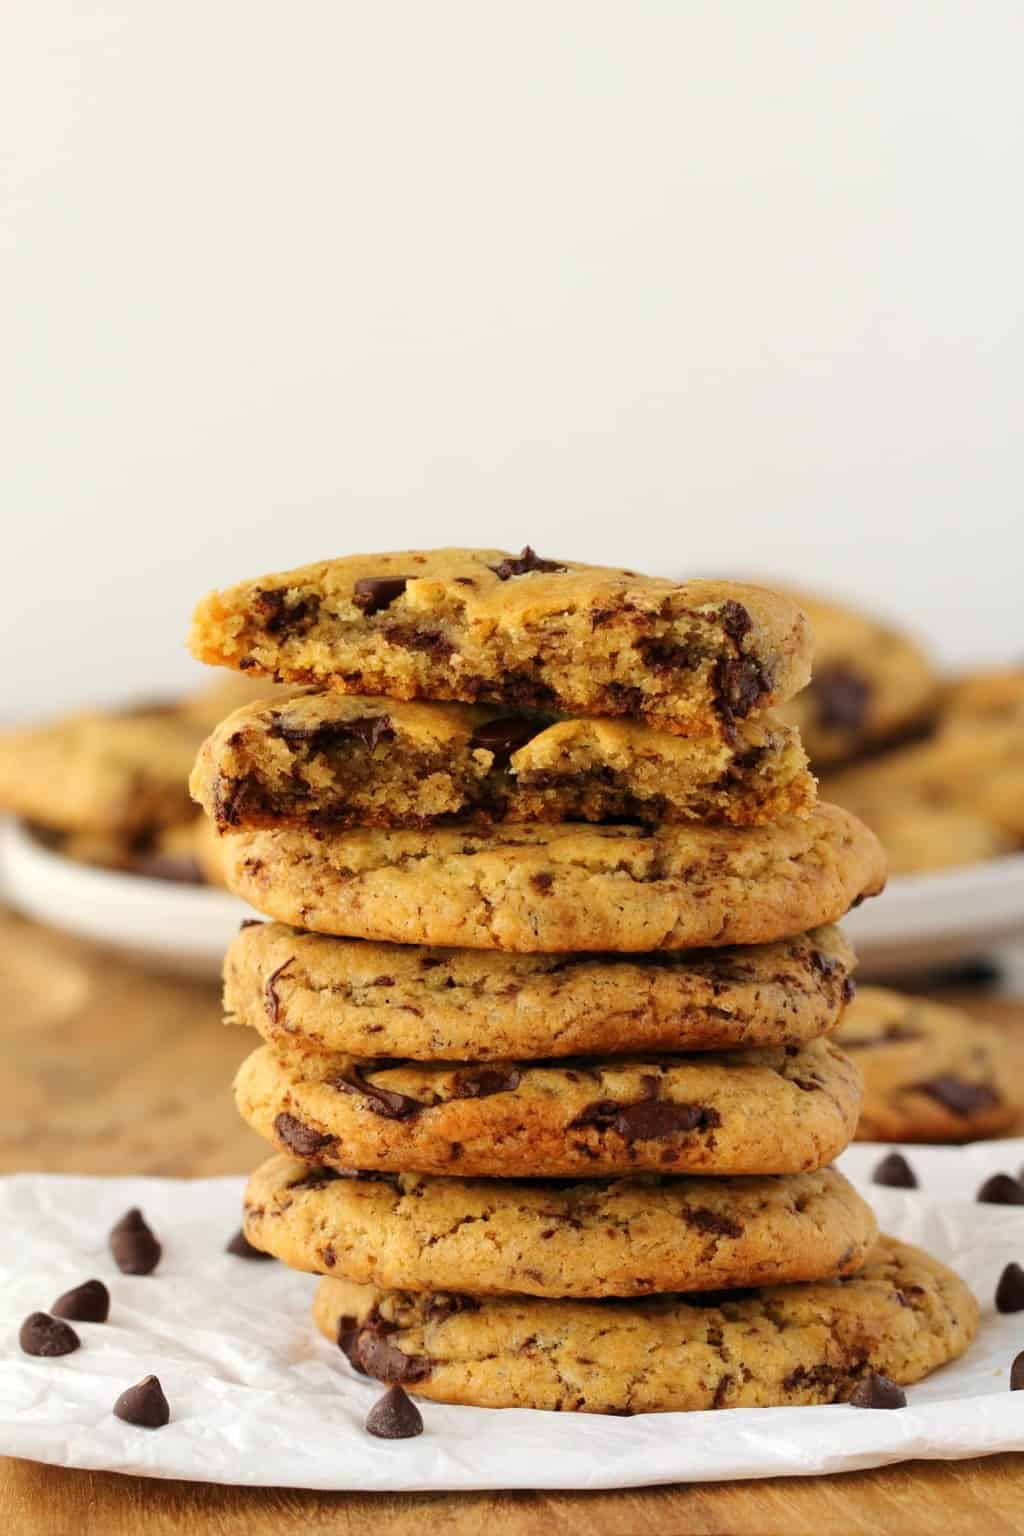 Vegan chocolate chip cookies in a stack, the top cookie broken in half to show the centers.